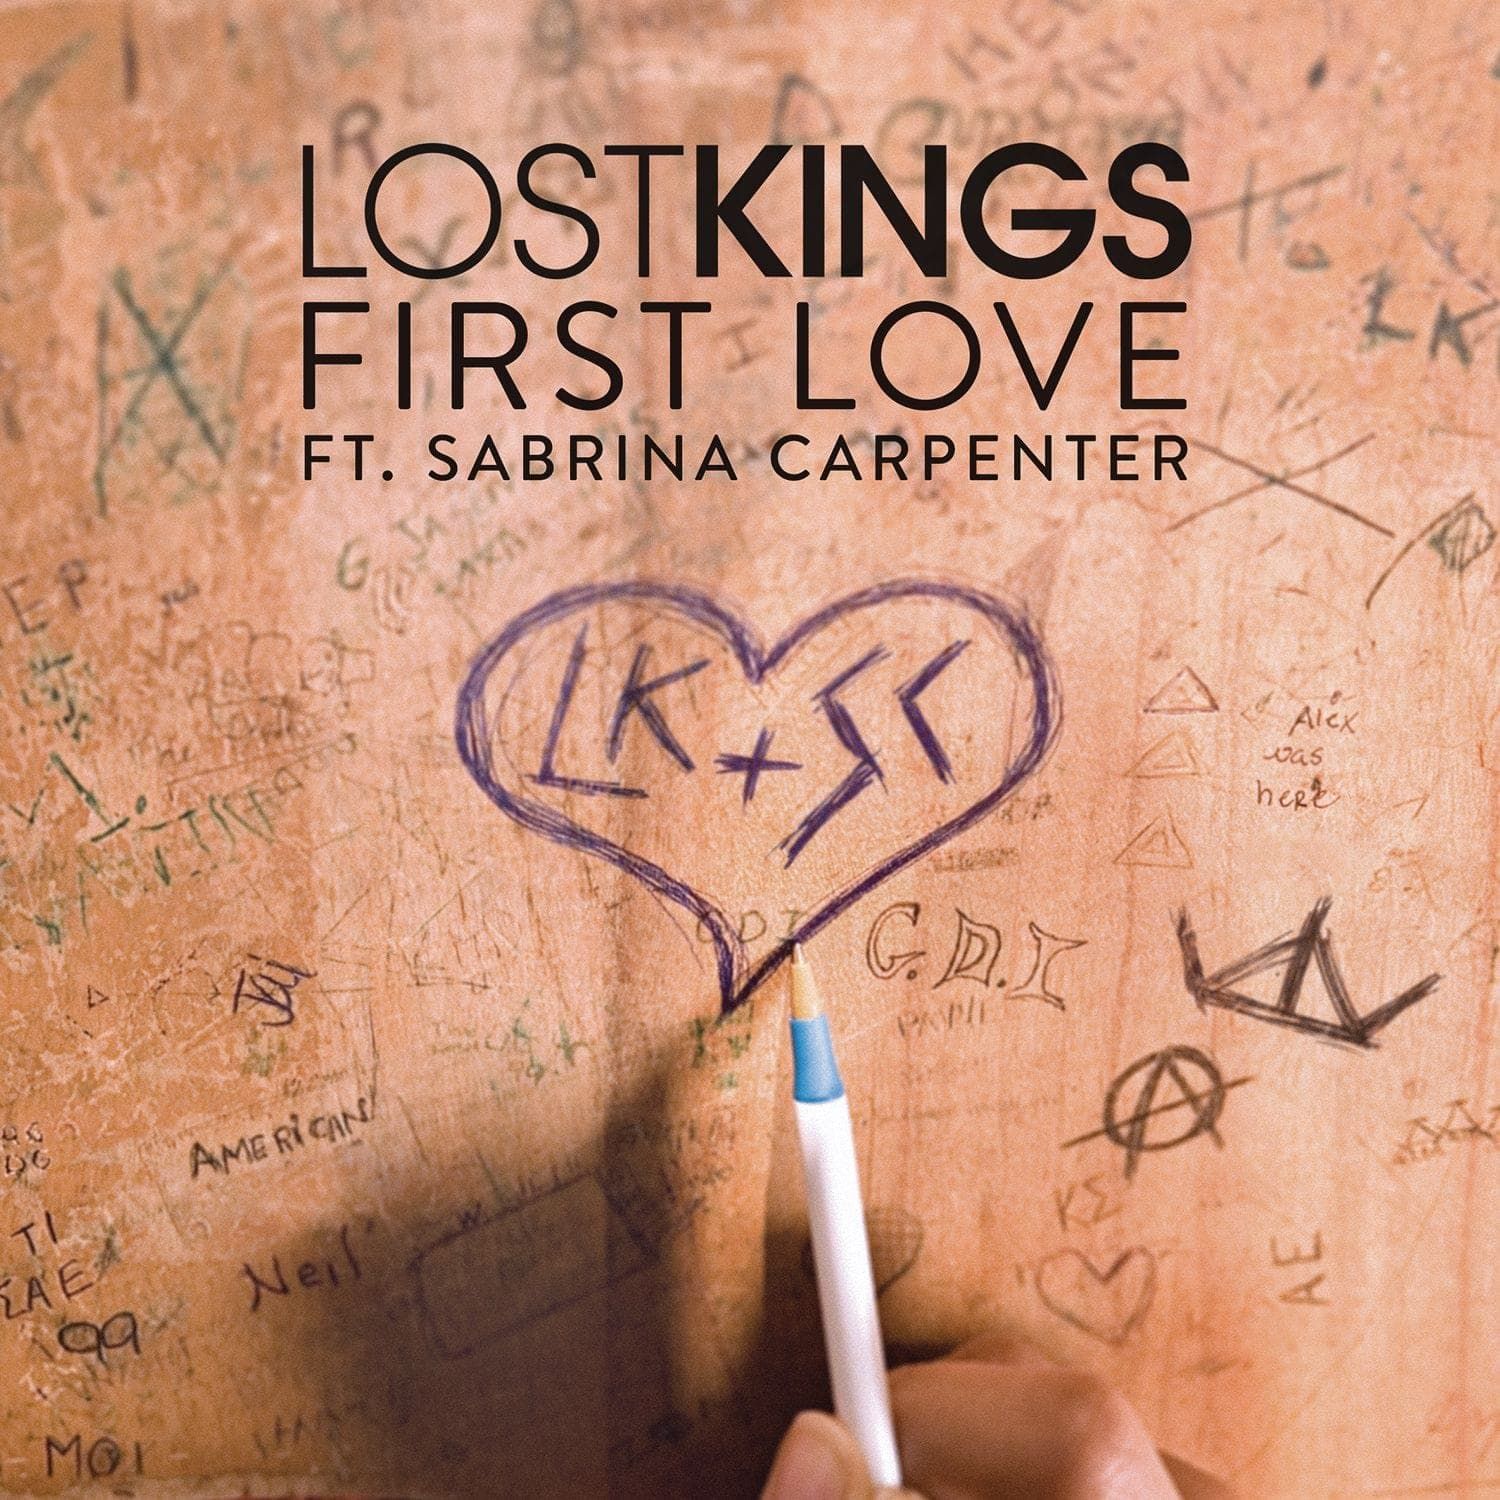 First Love - Lost Kings